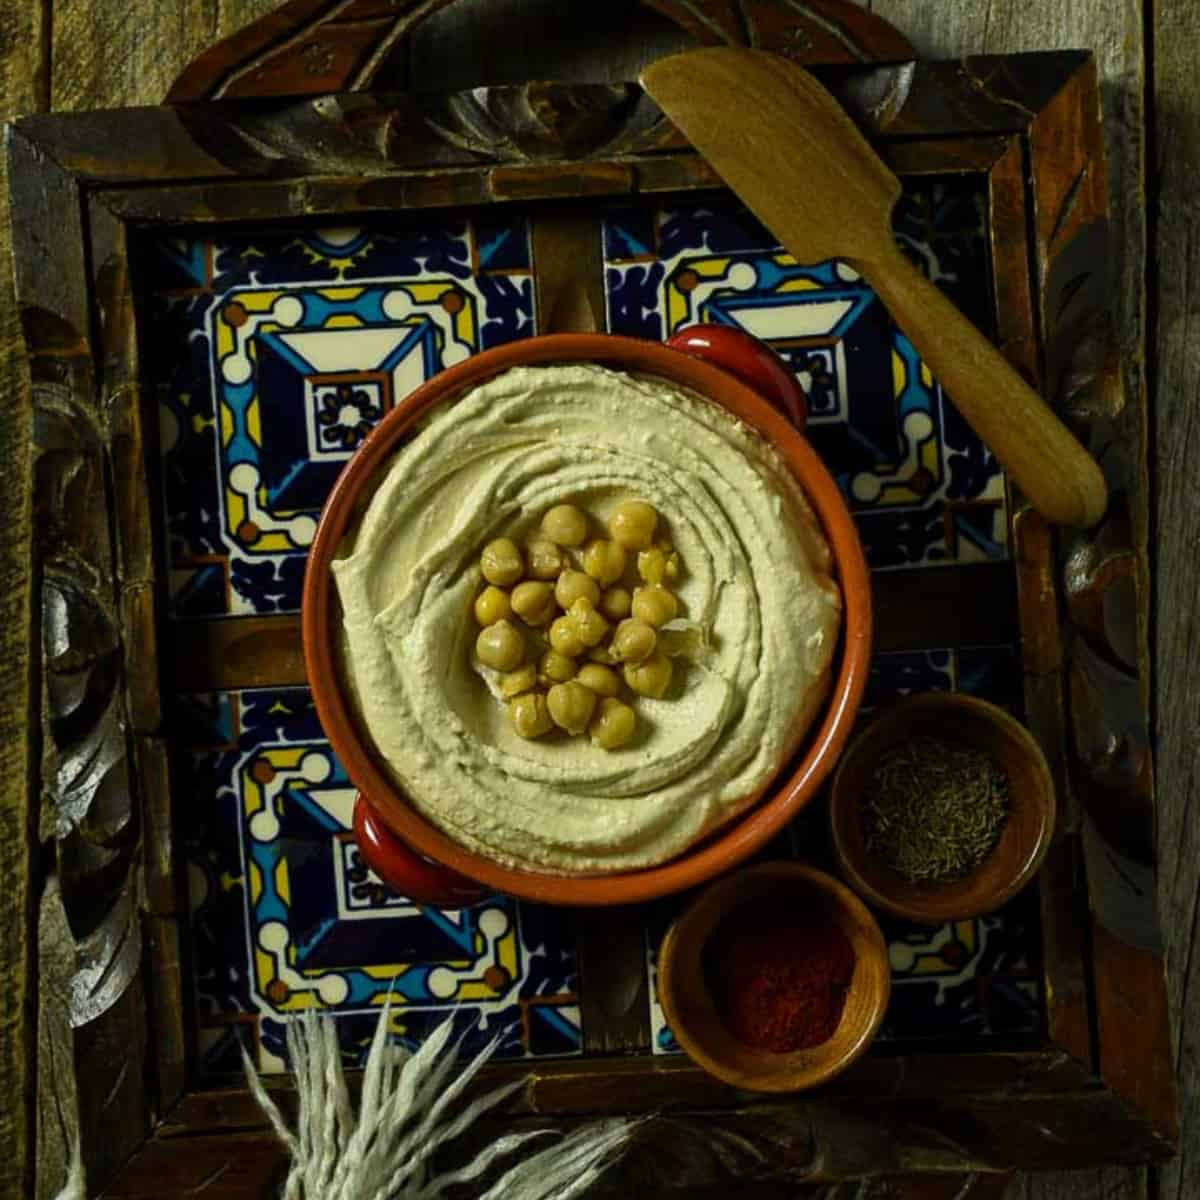 hummus in bowl topped with chickpeas.